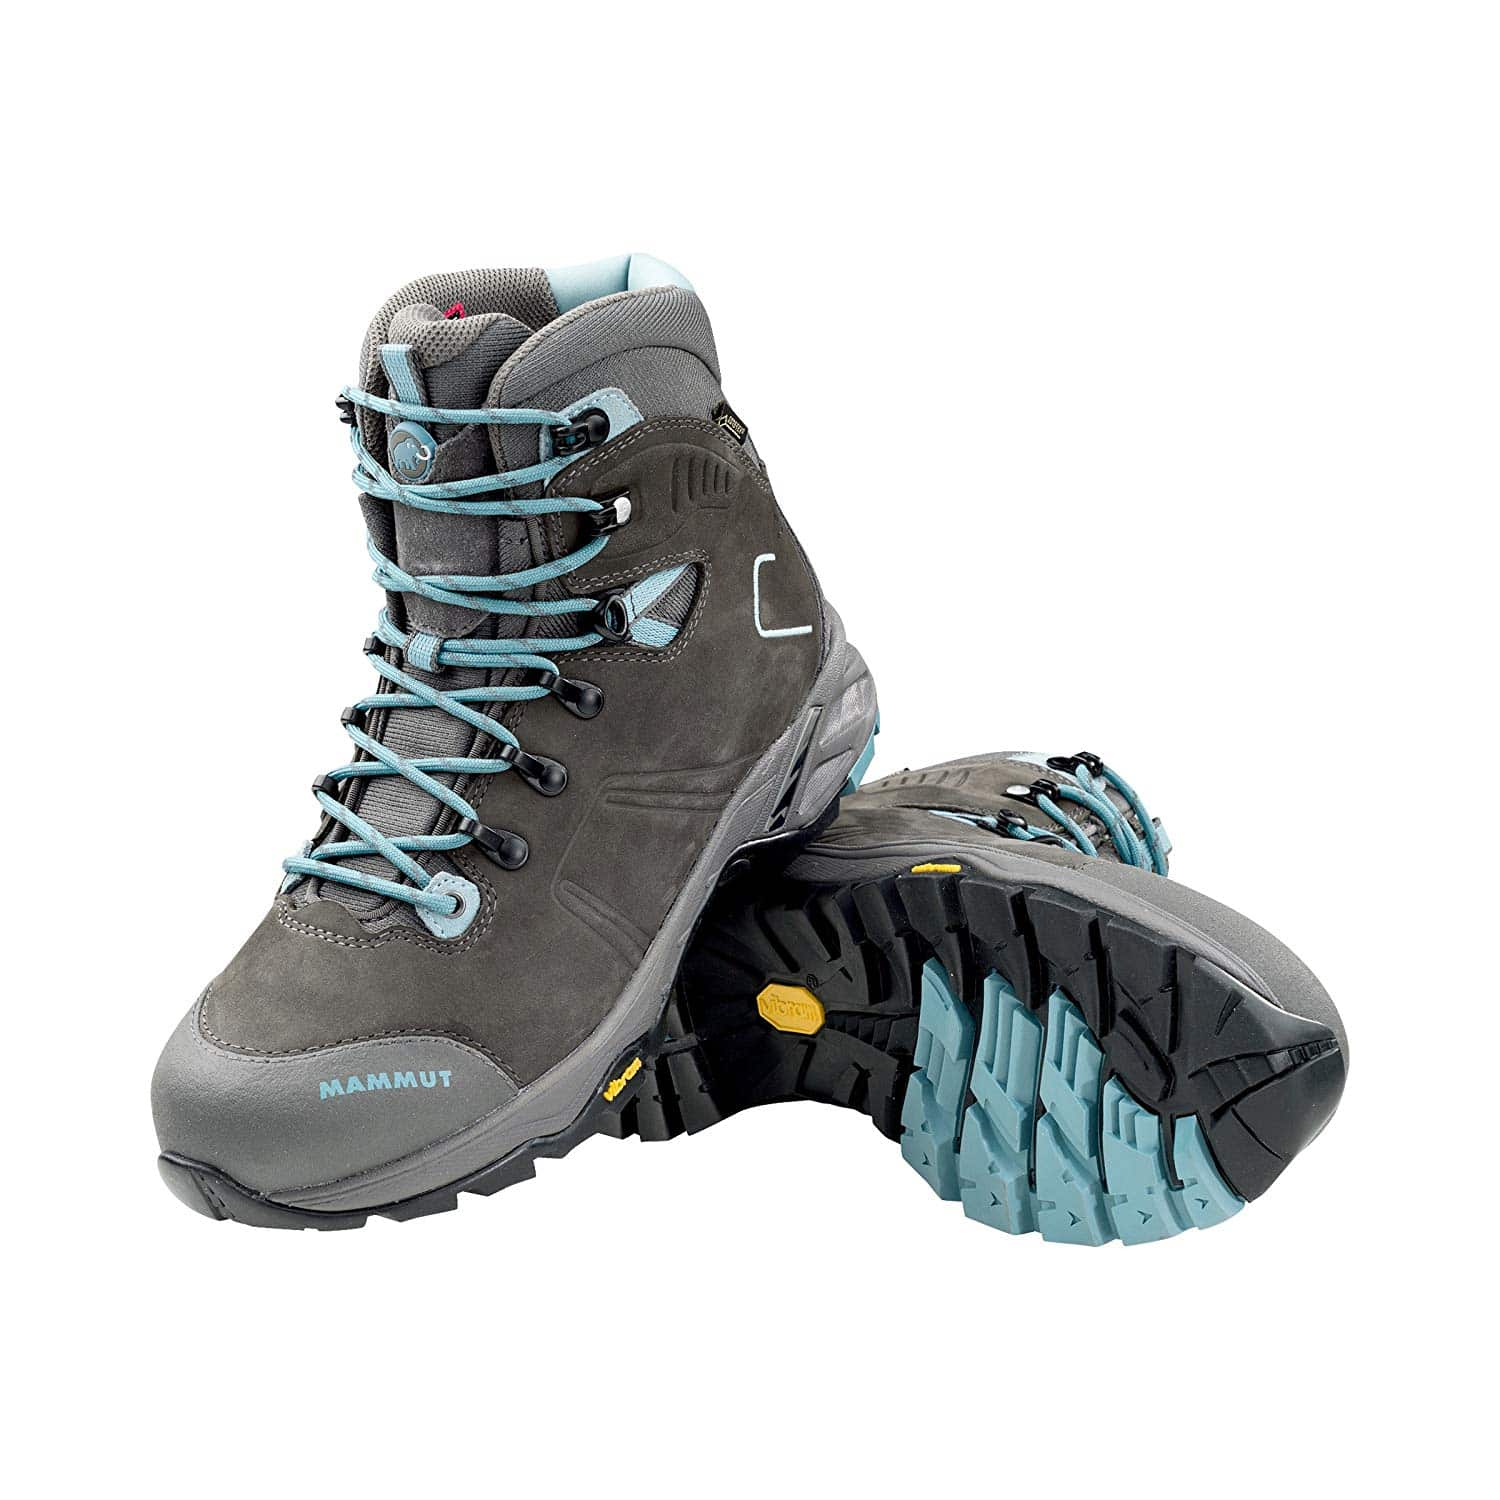 8. Mammut Nova Tour High GTX Boots